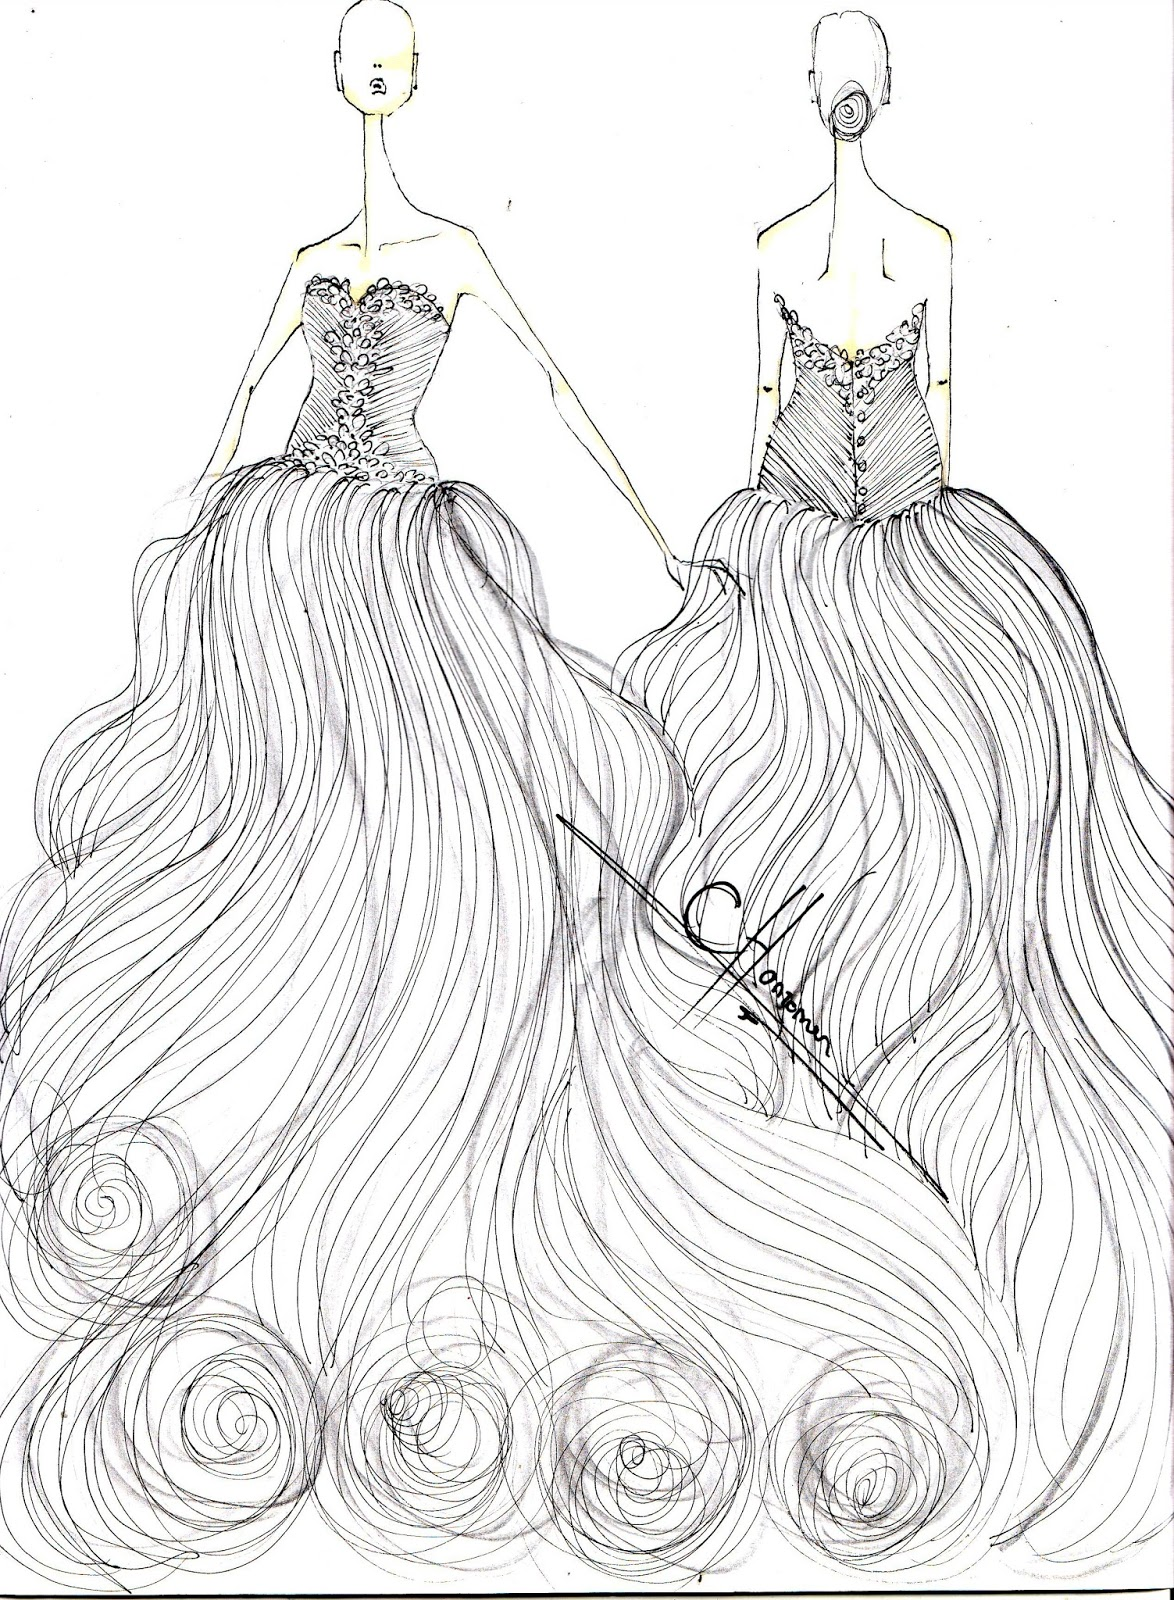 Amor: Wedding Gown Sketches for an April Bride